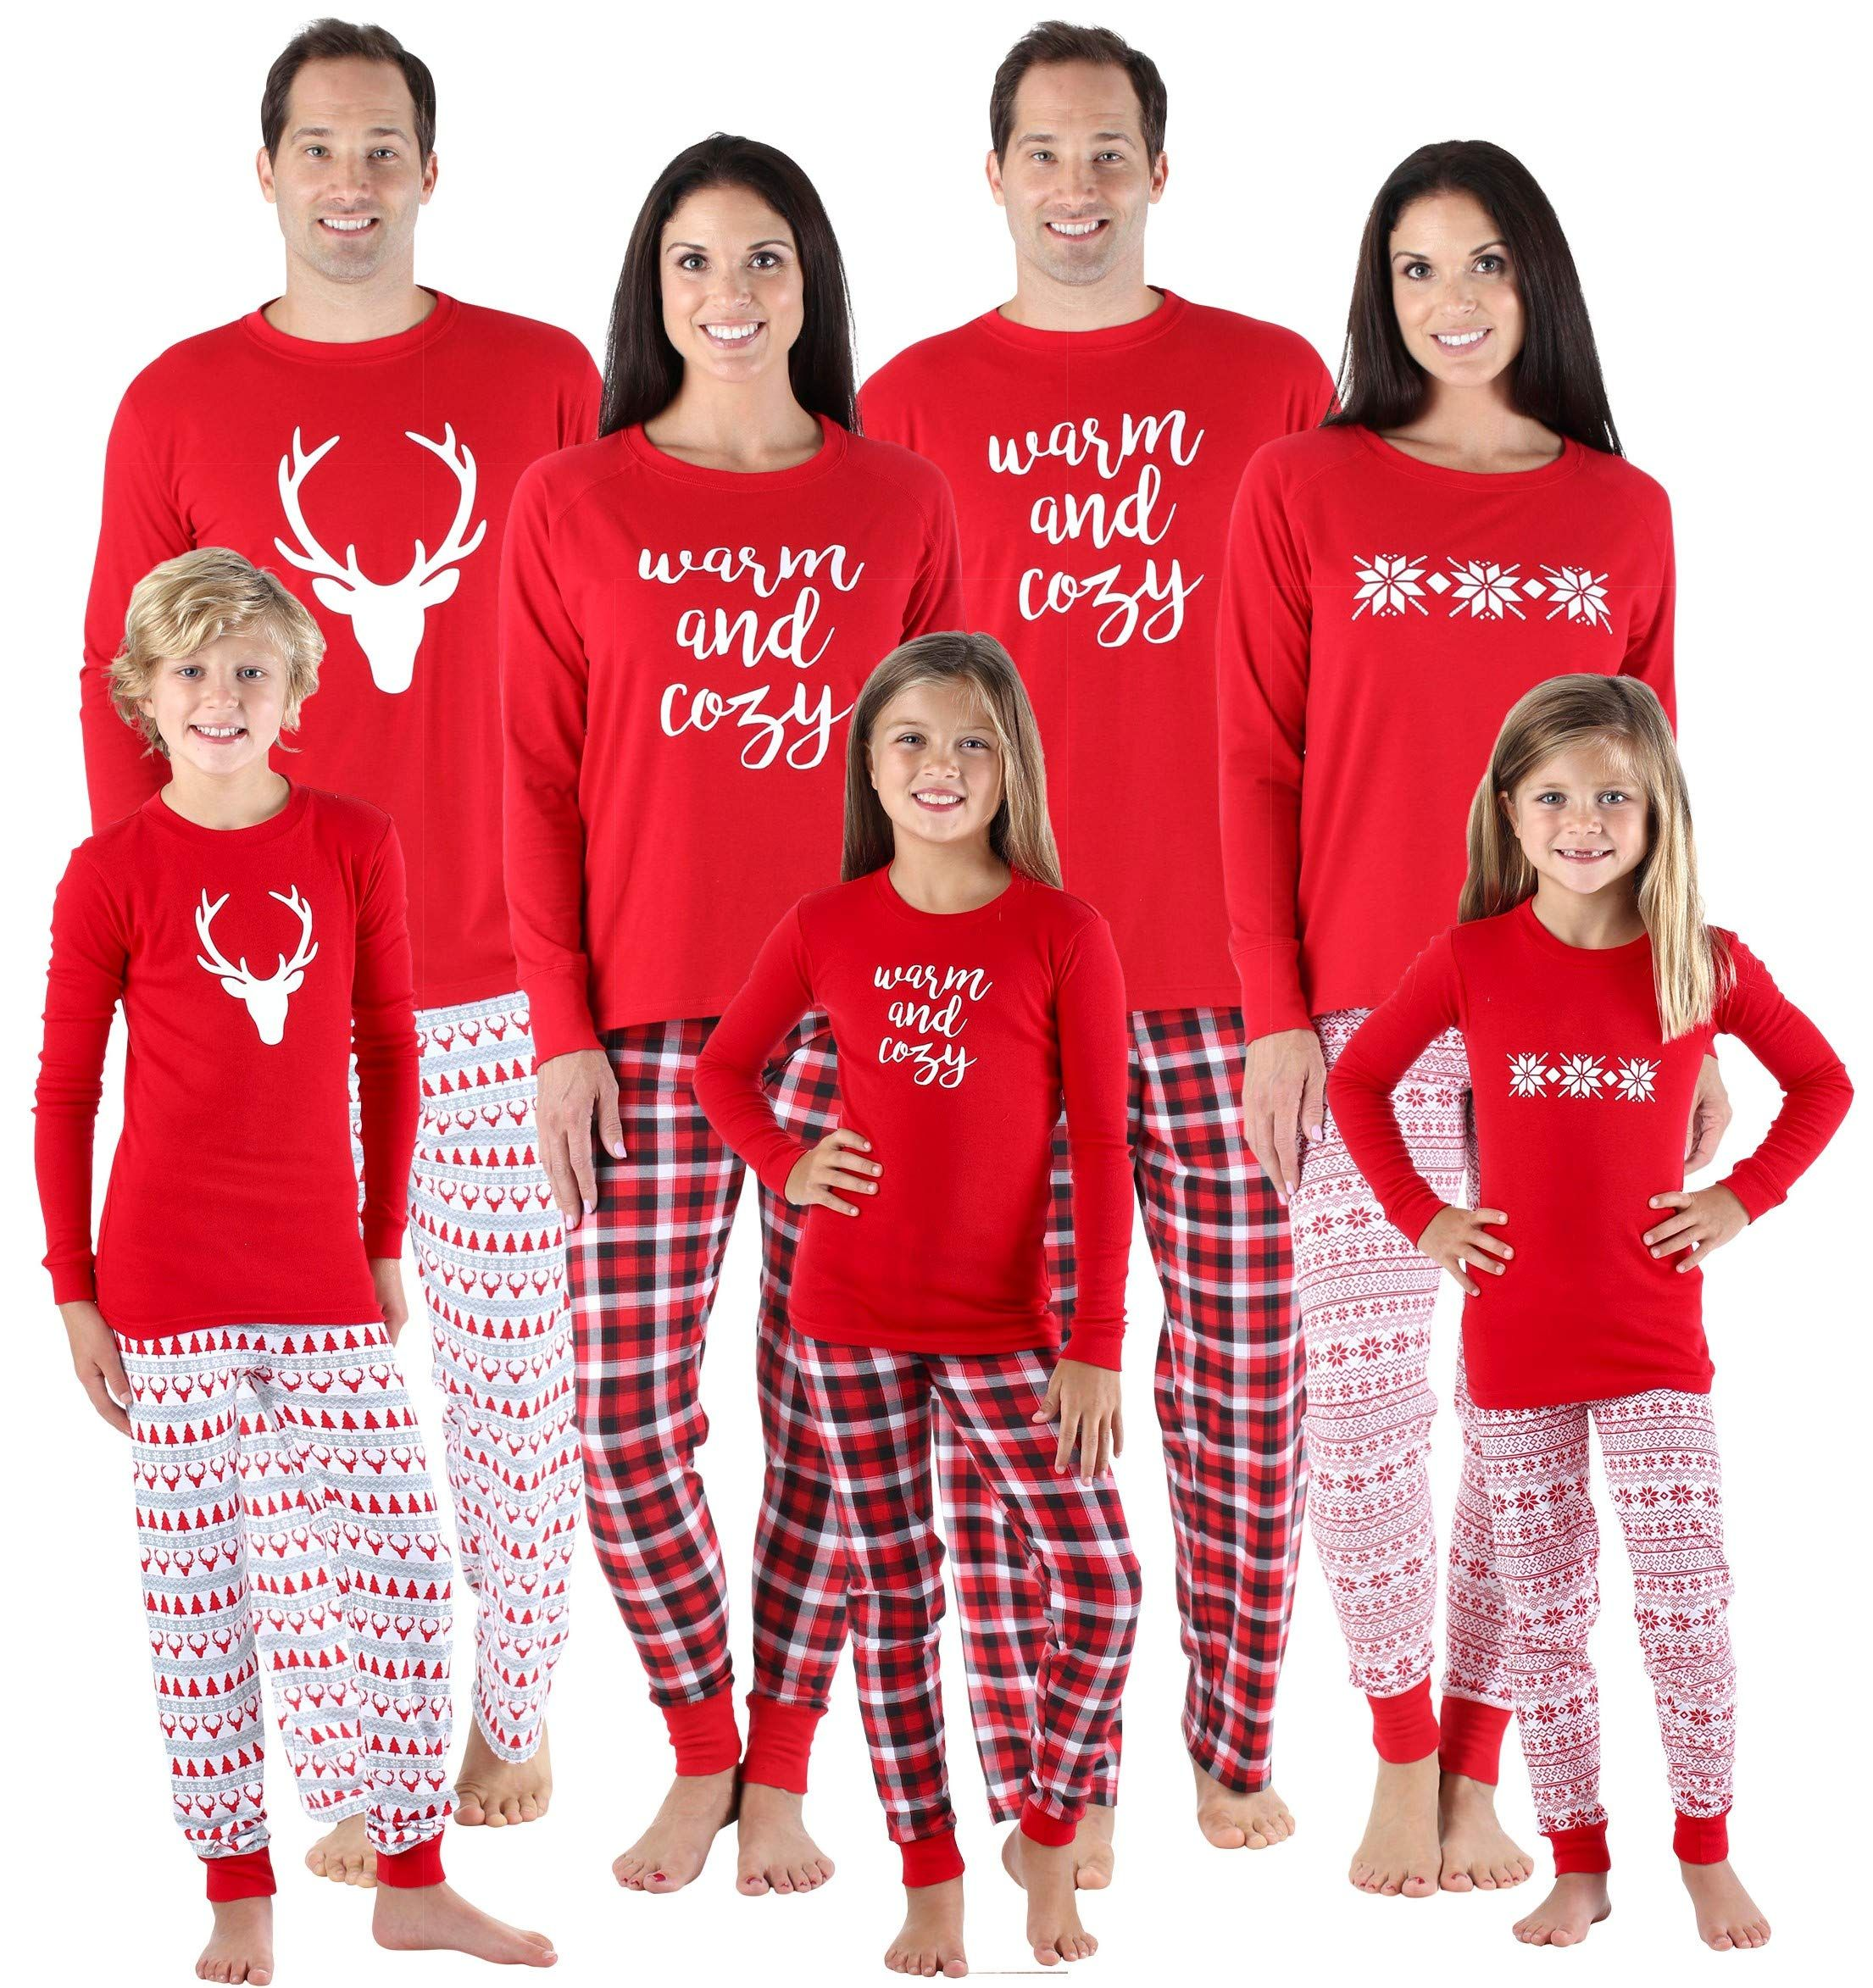 46636793dd SleepytimePjs Family Matching Sleepwear Knit Holiday Mix Match Pajamas PJs  Collection